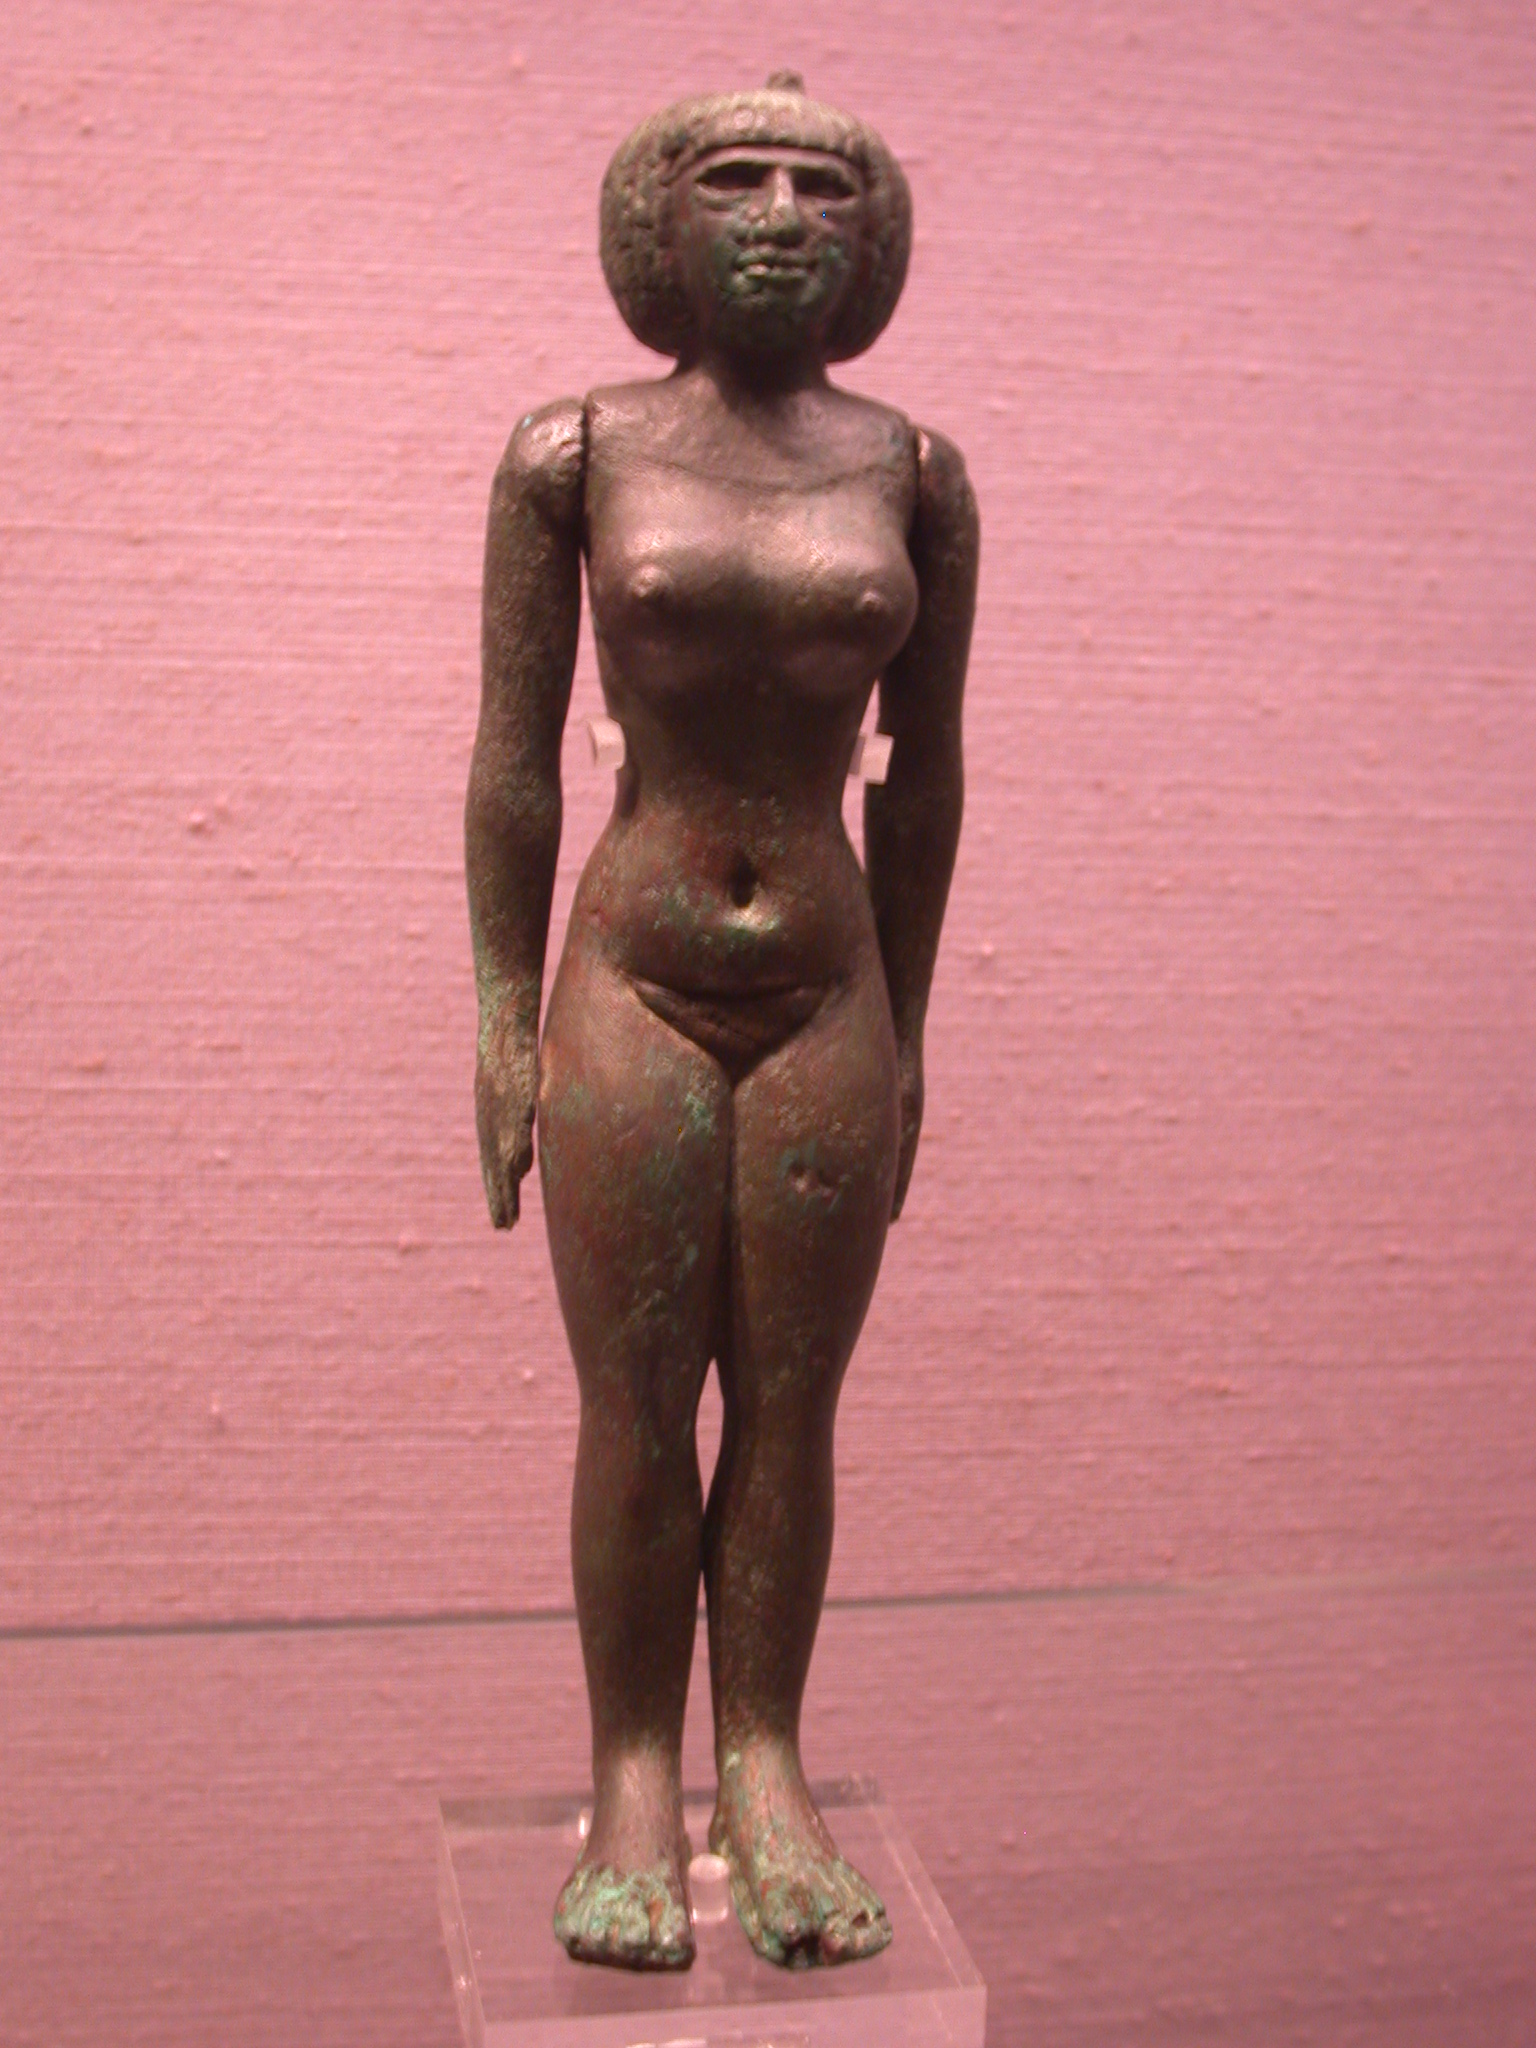 Nubian Fertility Figurine, Copper Alloy, 25th Dynasty Sudan, Fitzwilliam Museum, Cambridge, Englad